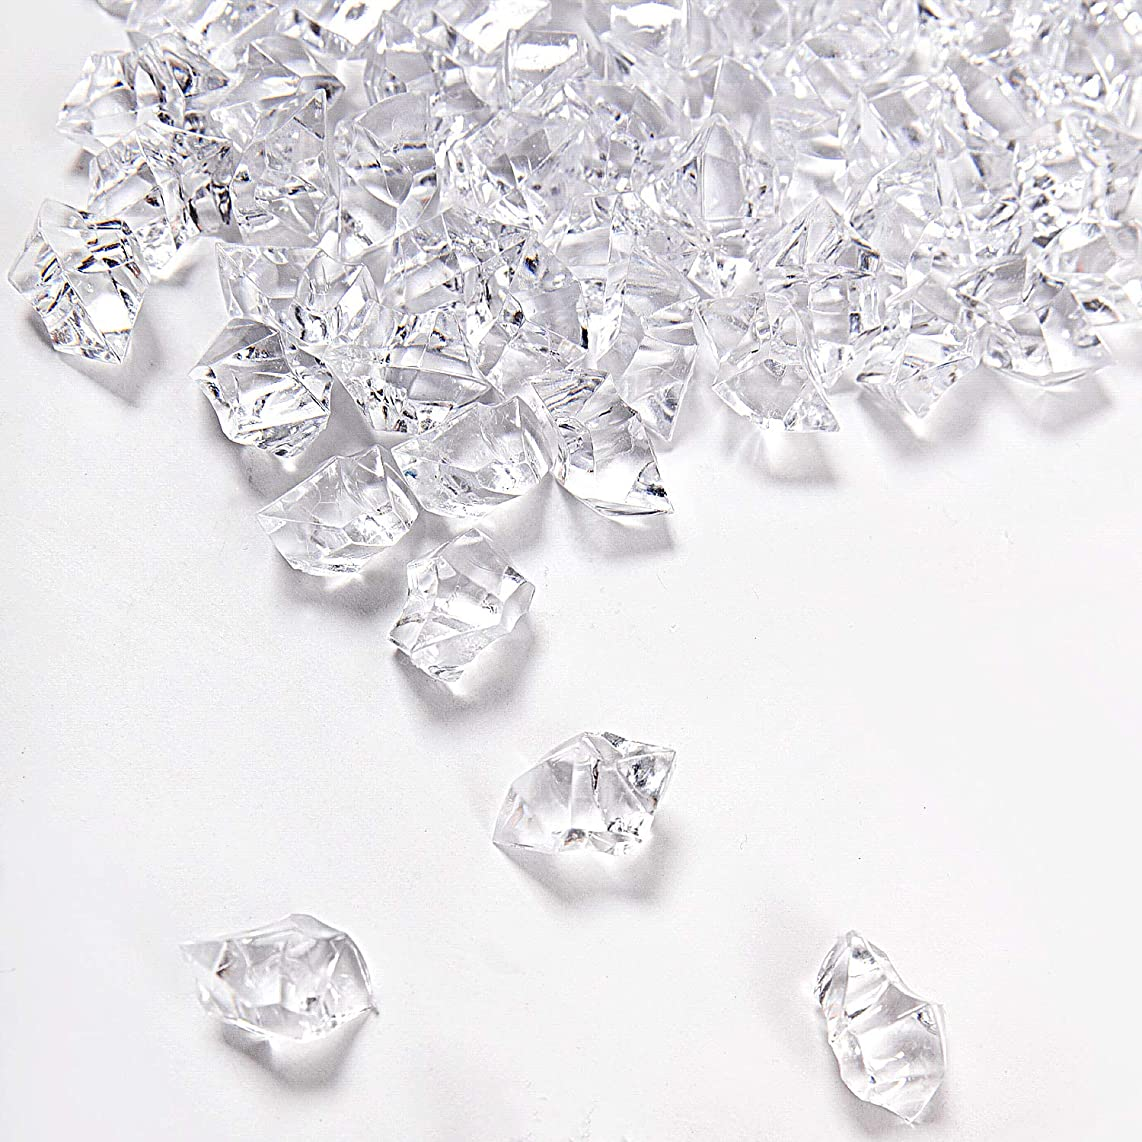 KINJOEK 500 Pieces Acrylic Clear Ice Rock Fake Diamond Crystals Ice Cubes Gems for Home Table Decor Wedding Decorations Vase Filler Stage Acting, Photography Props, Art Crafts Working